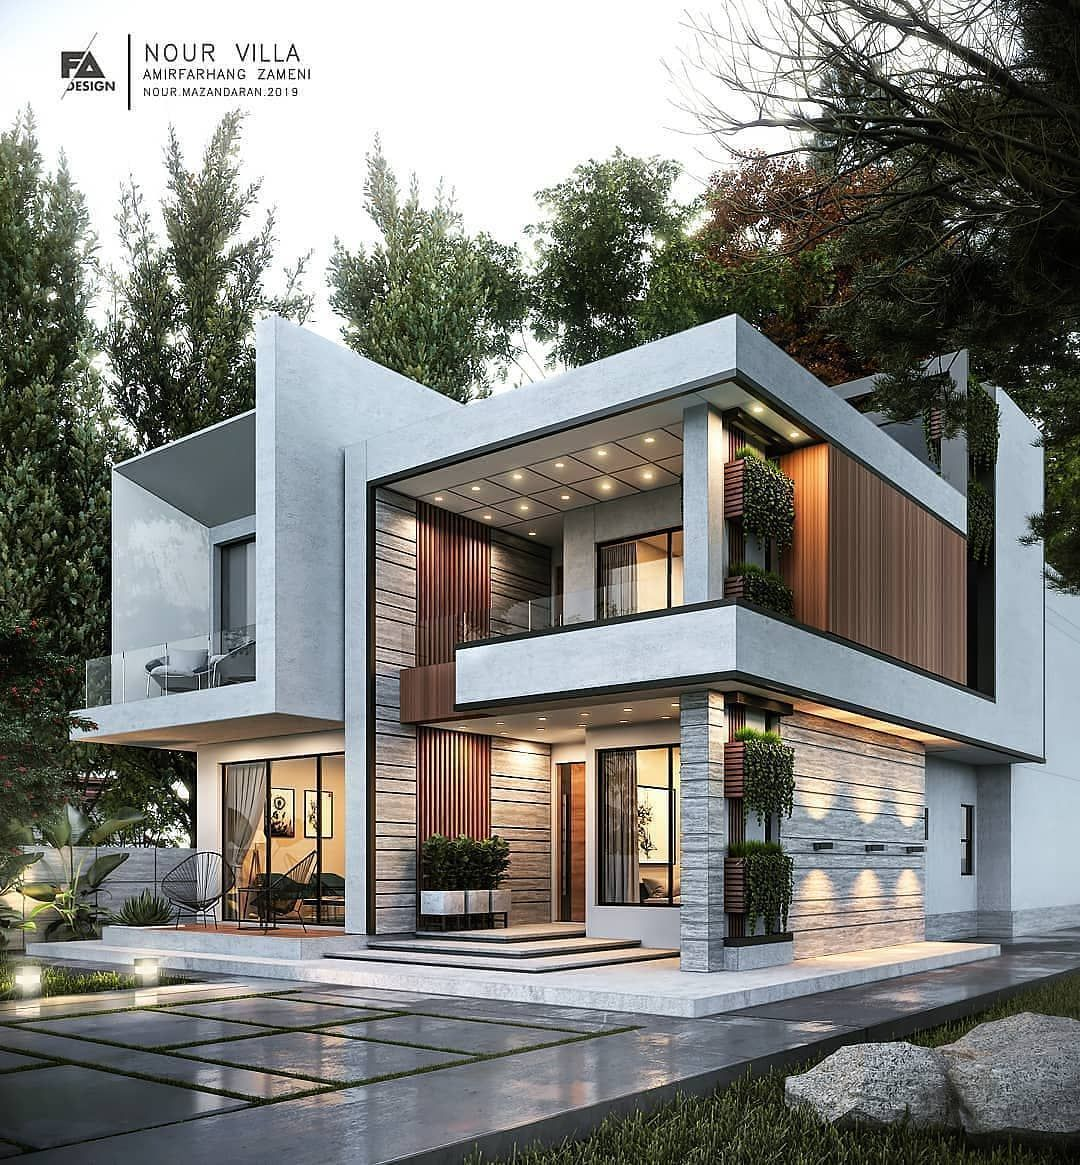 Case E Stili Design follow @architecture.crc what do u think about this noor